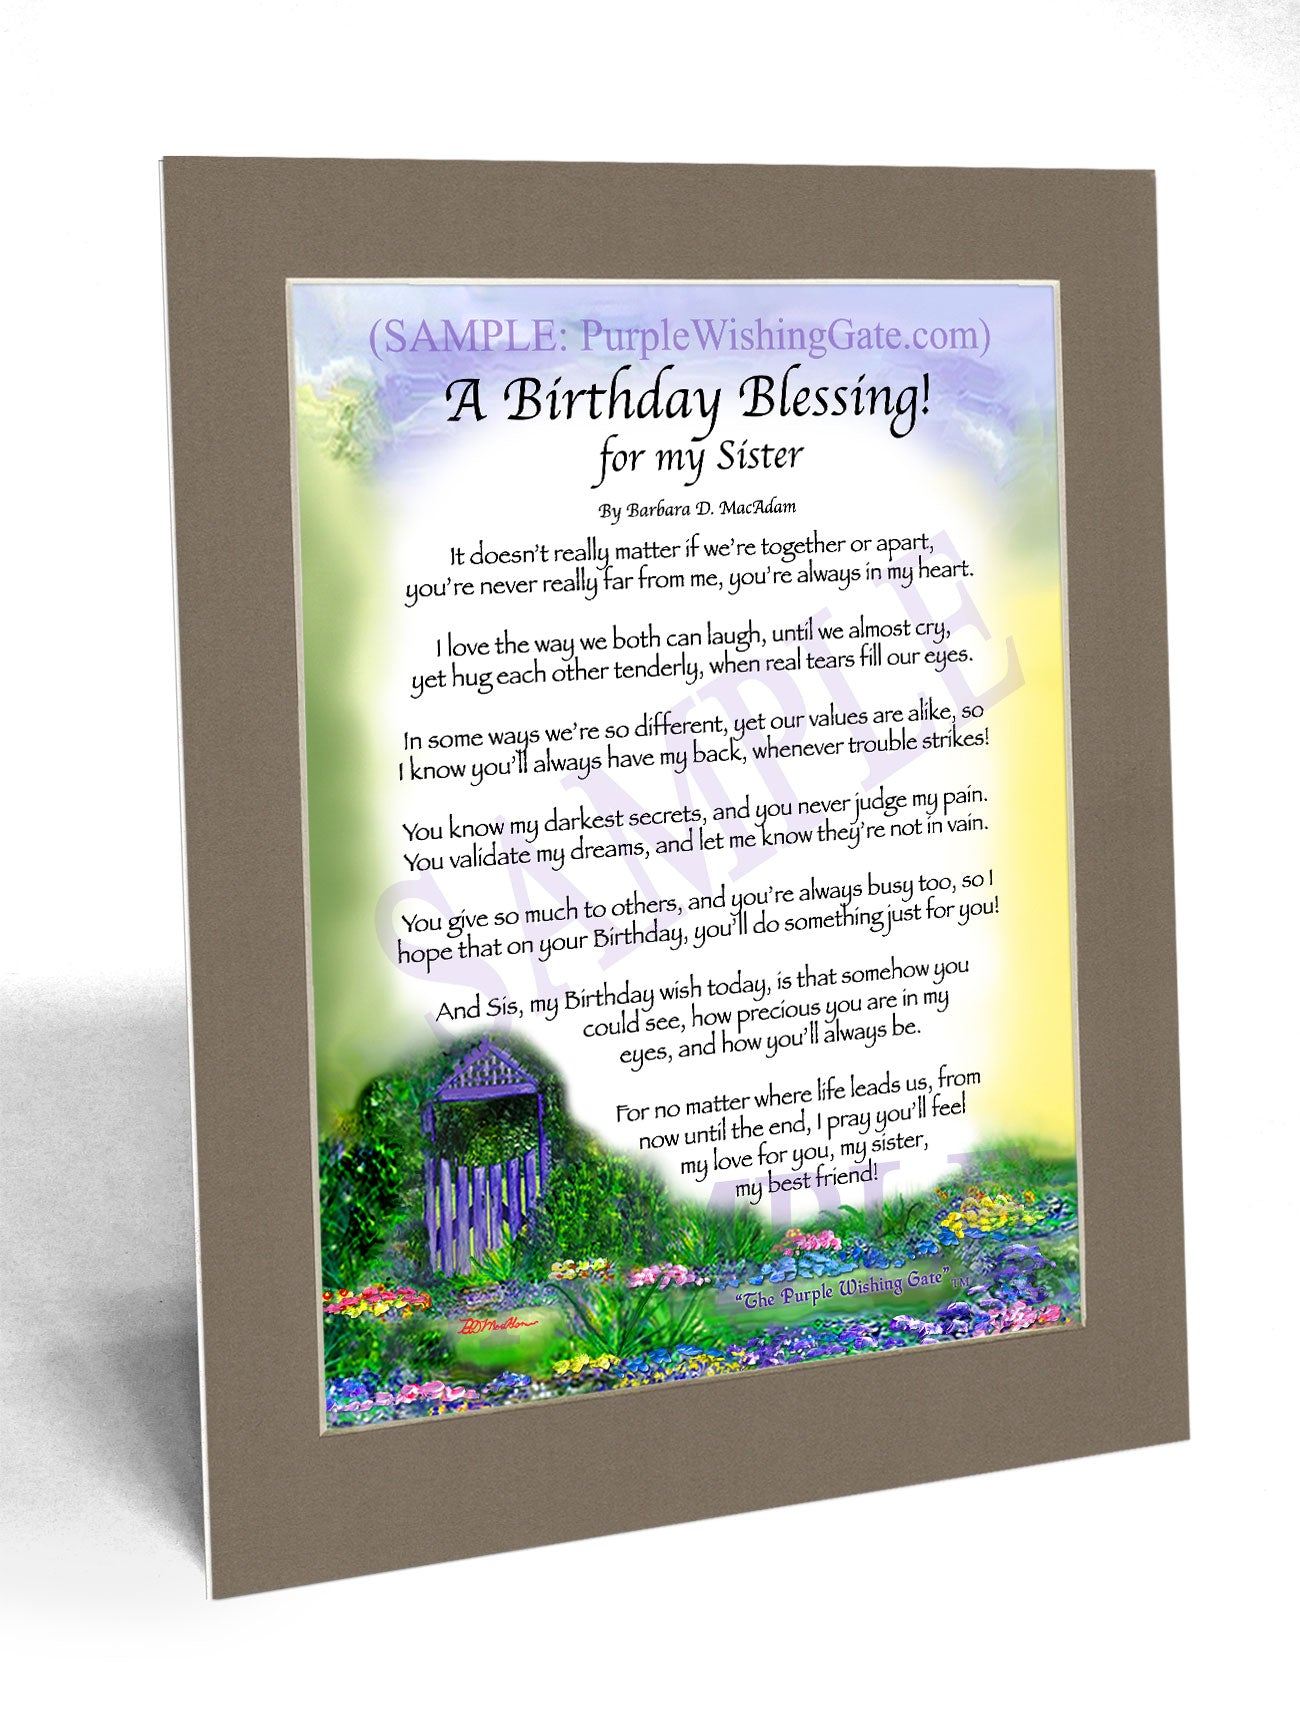 A Birthday Blessing! for my Sister - Birthday Gift - PurpleWishingGate.com